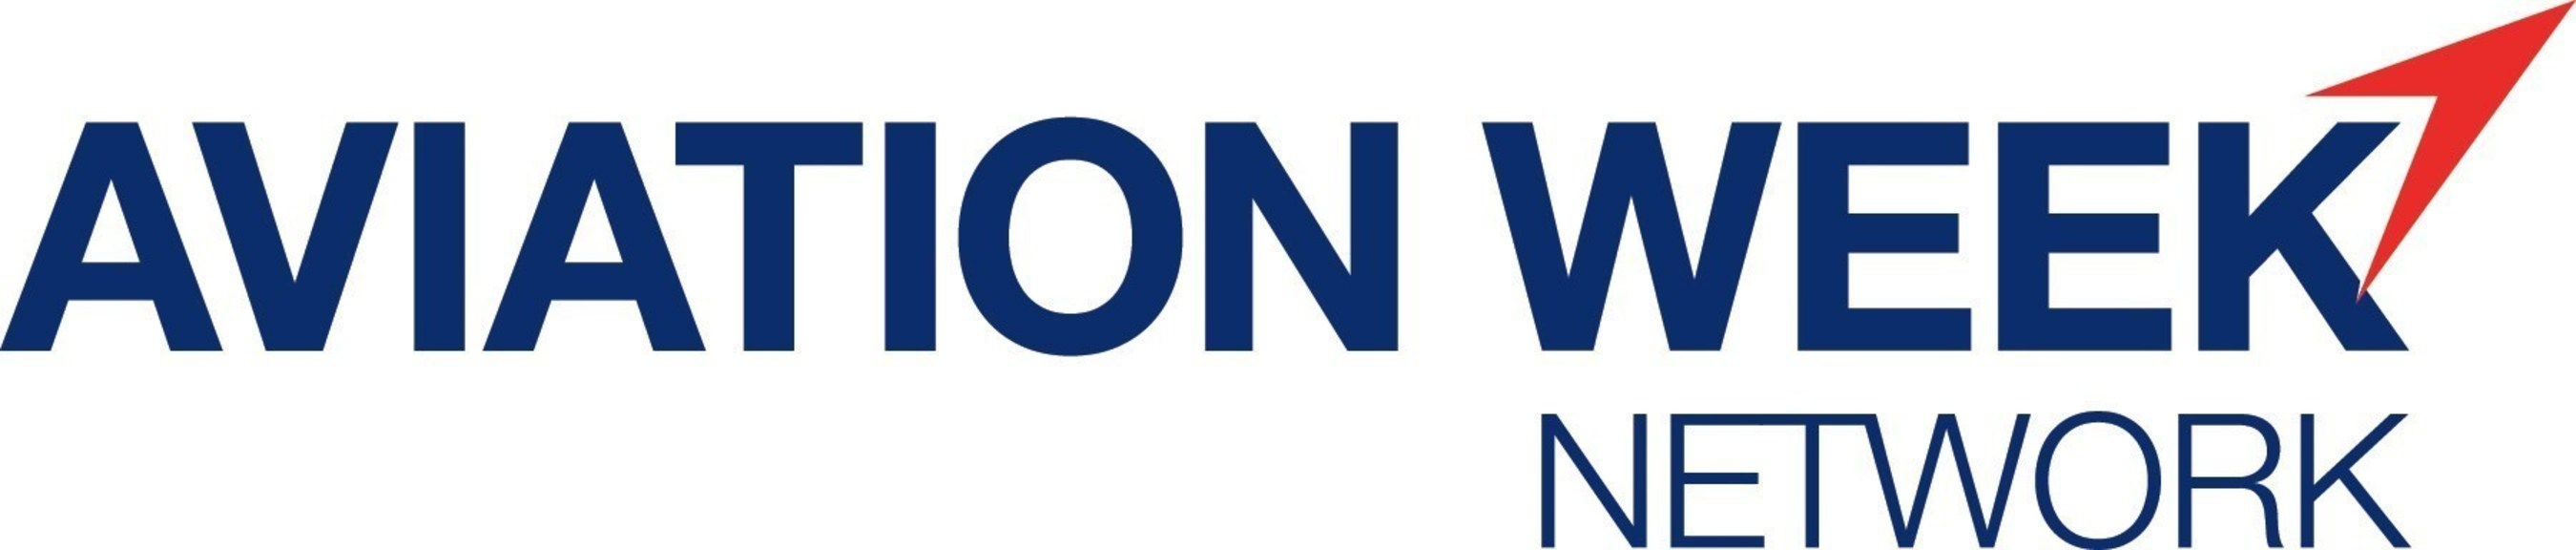 Penton's Aviation Week Network Announces Winners of 13th Annual Aviation Week Program Excellence Awards